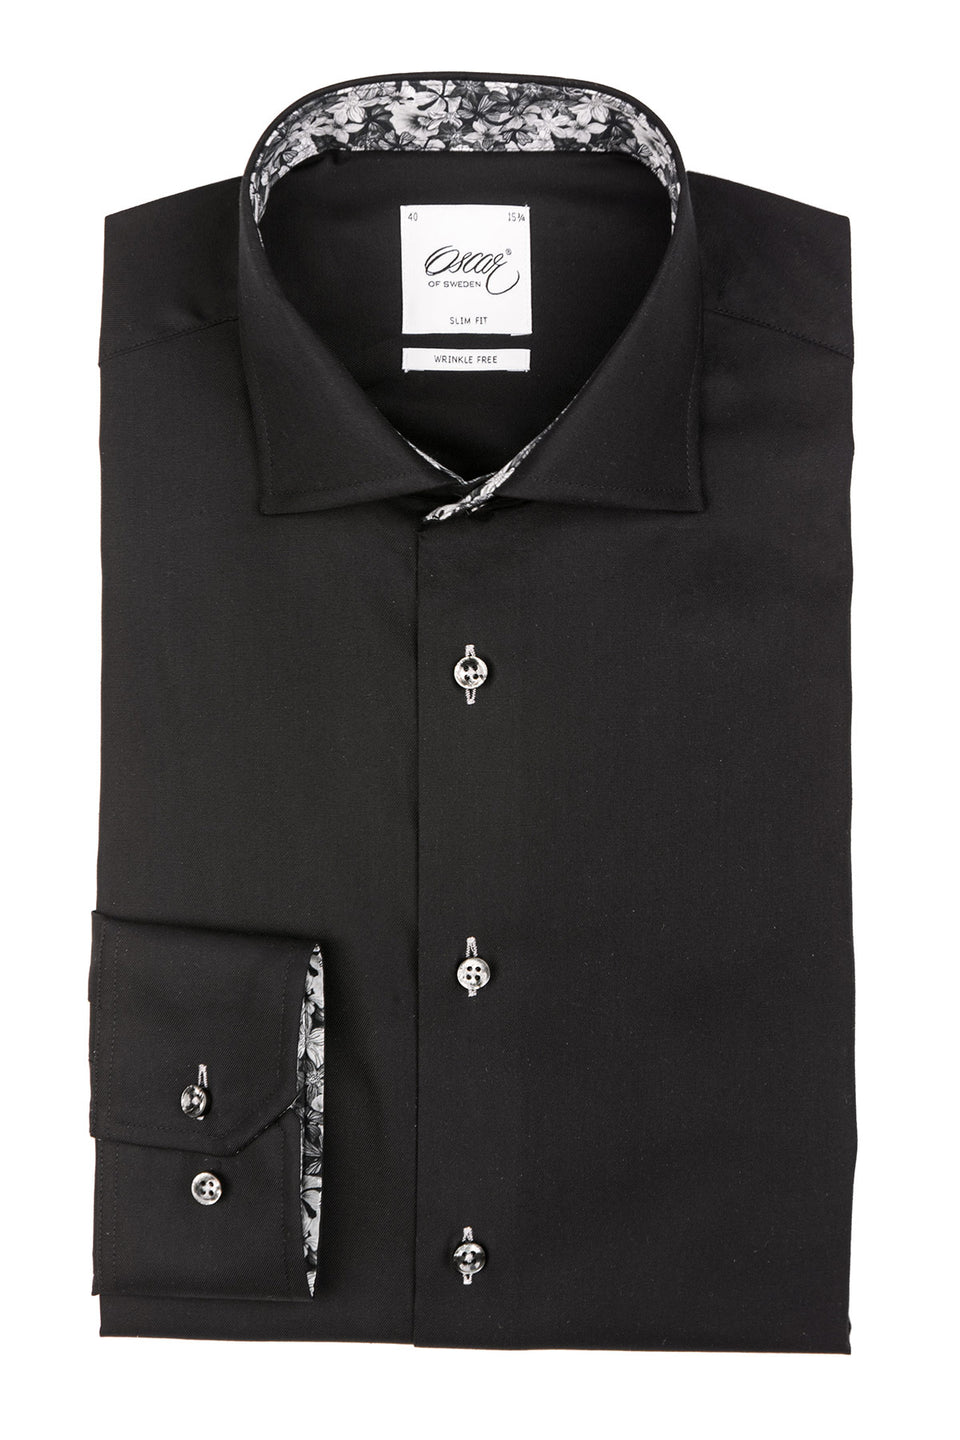 Black slim fit shirt with contrast details